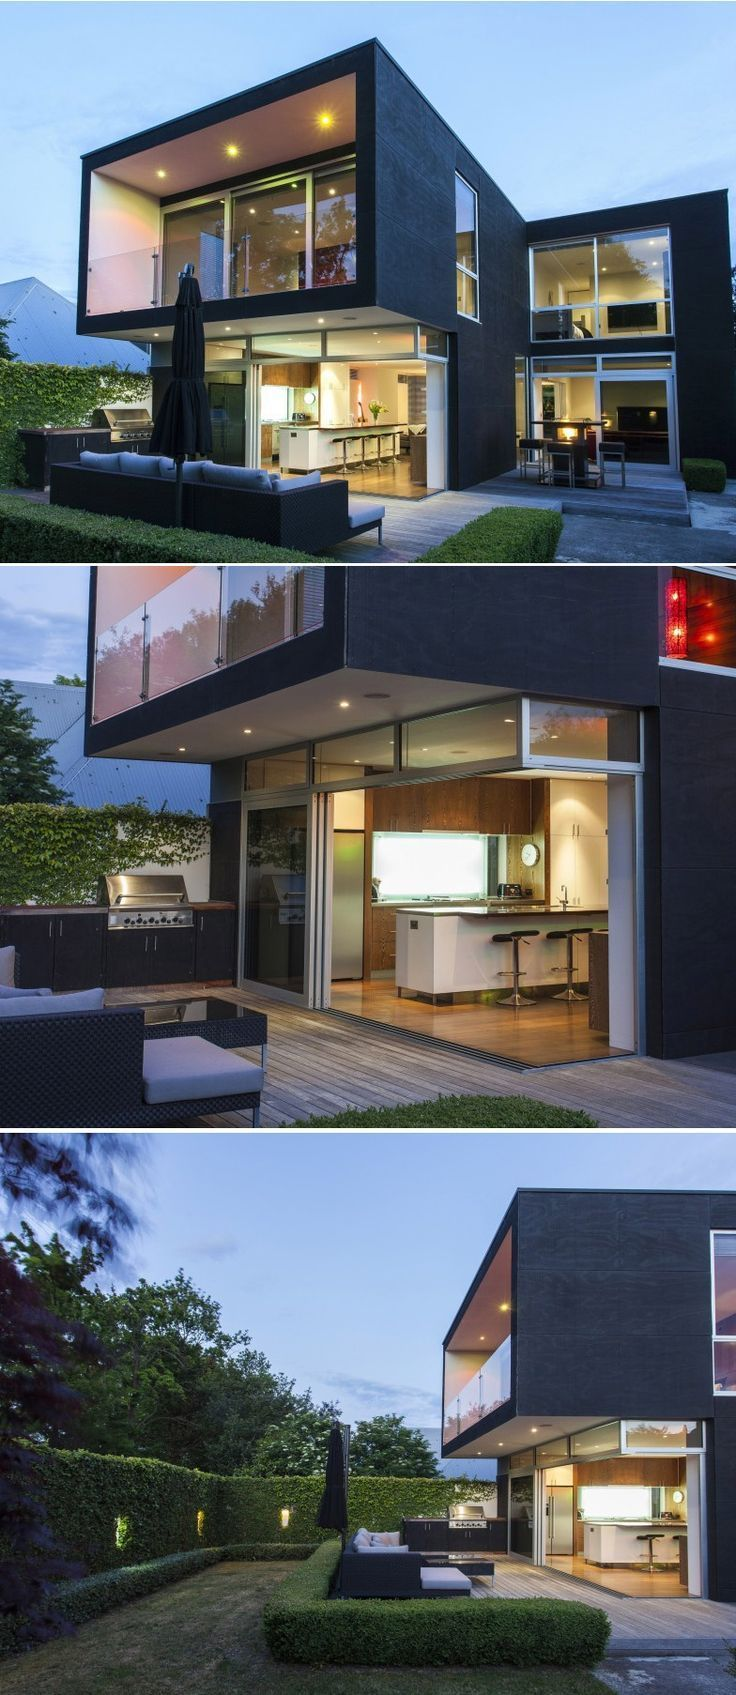 1000+ ideas about Modern Home Design on Pinterest  Luxury Houses ... - ^